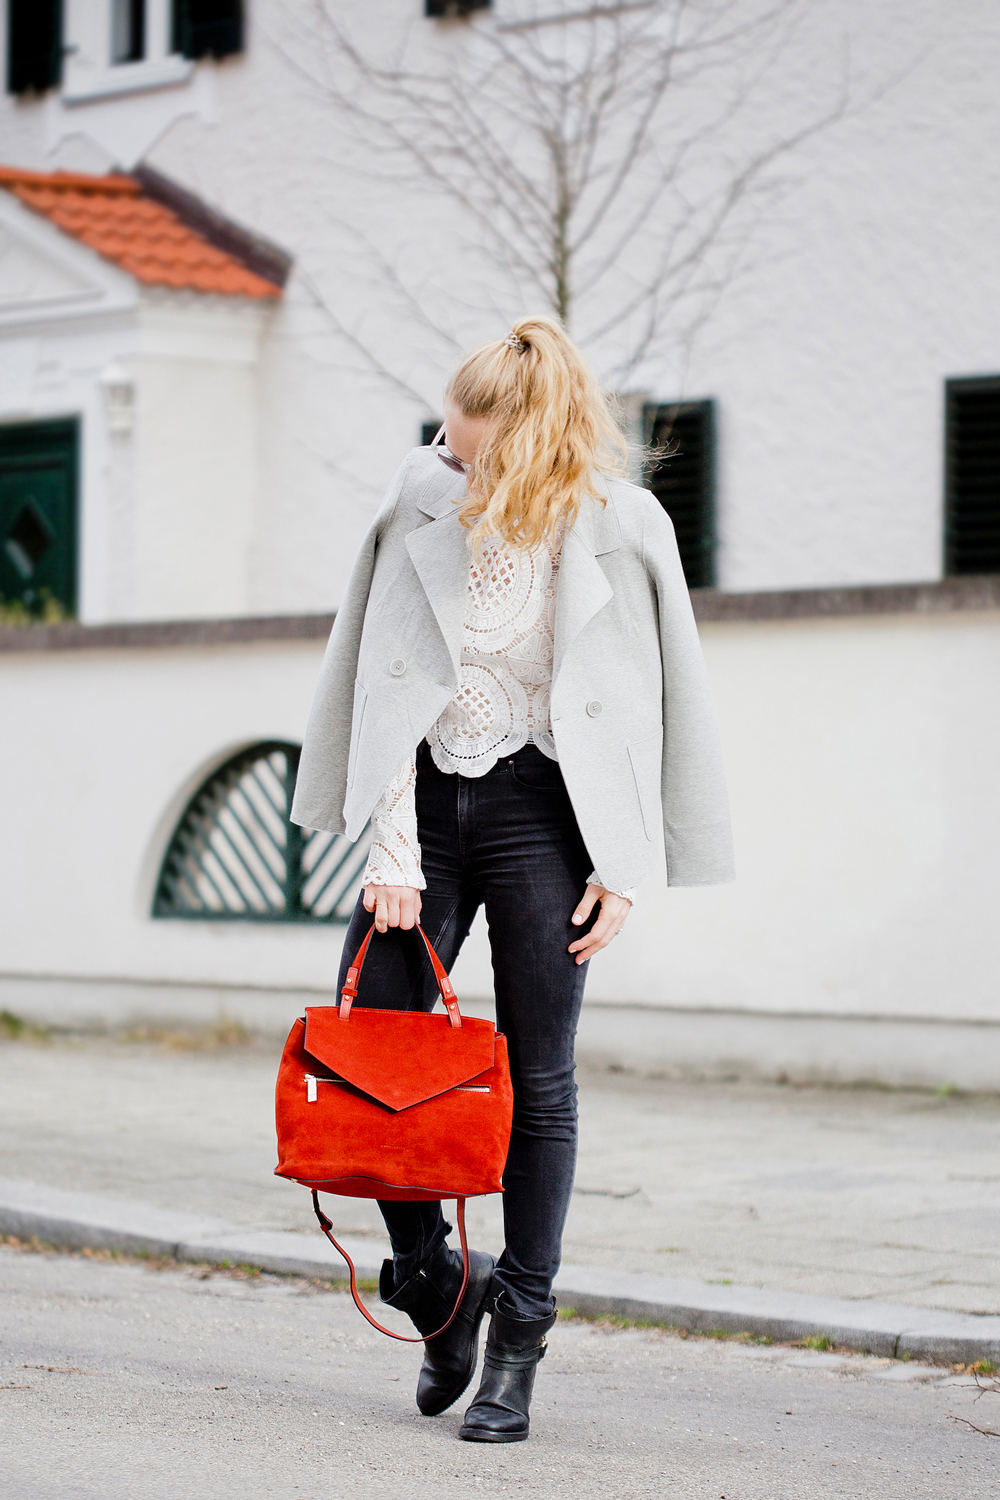 Self Portrait lace blouse, Coccinelle Sophie Chianti bag, The Golden Bun | München Modeblog, German Fashion Blog, Fashionblogger, new trends